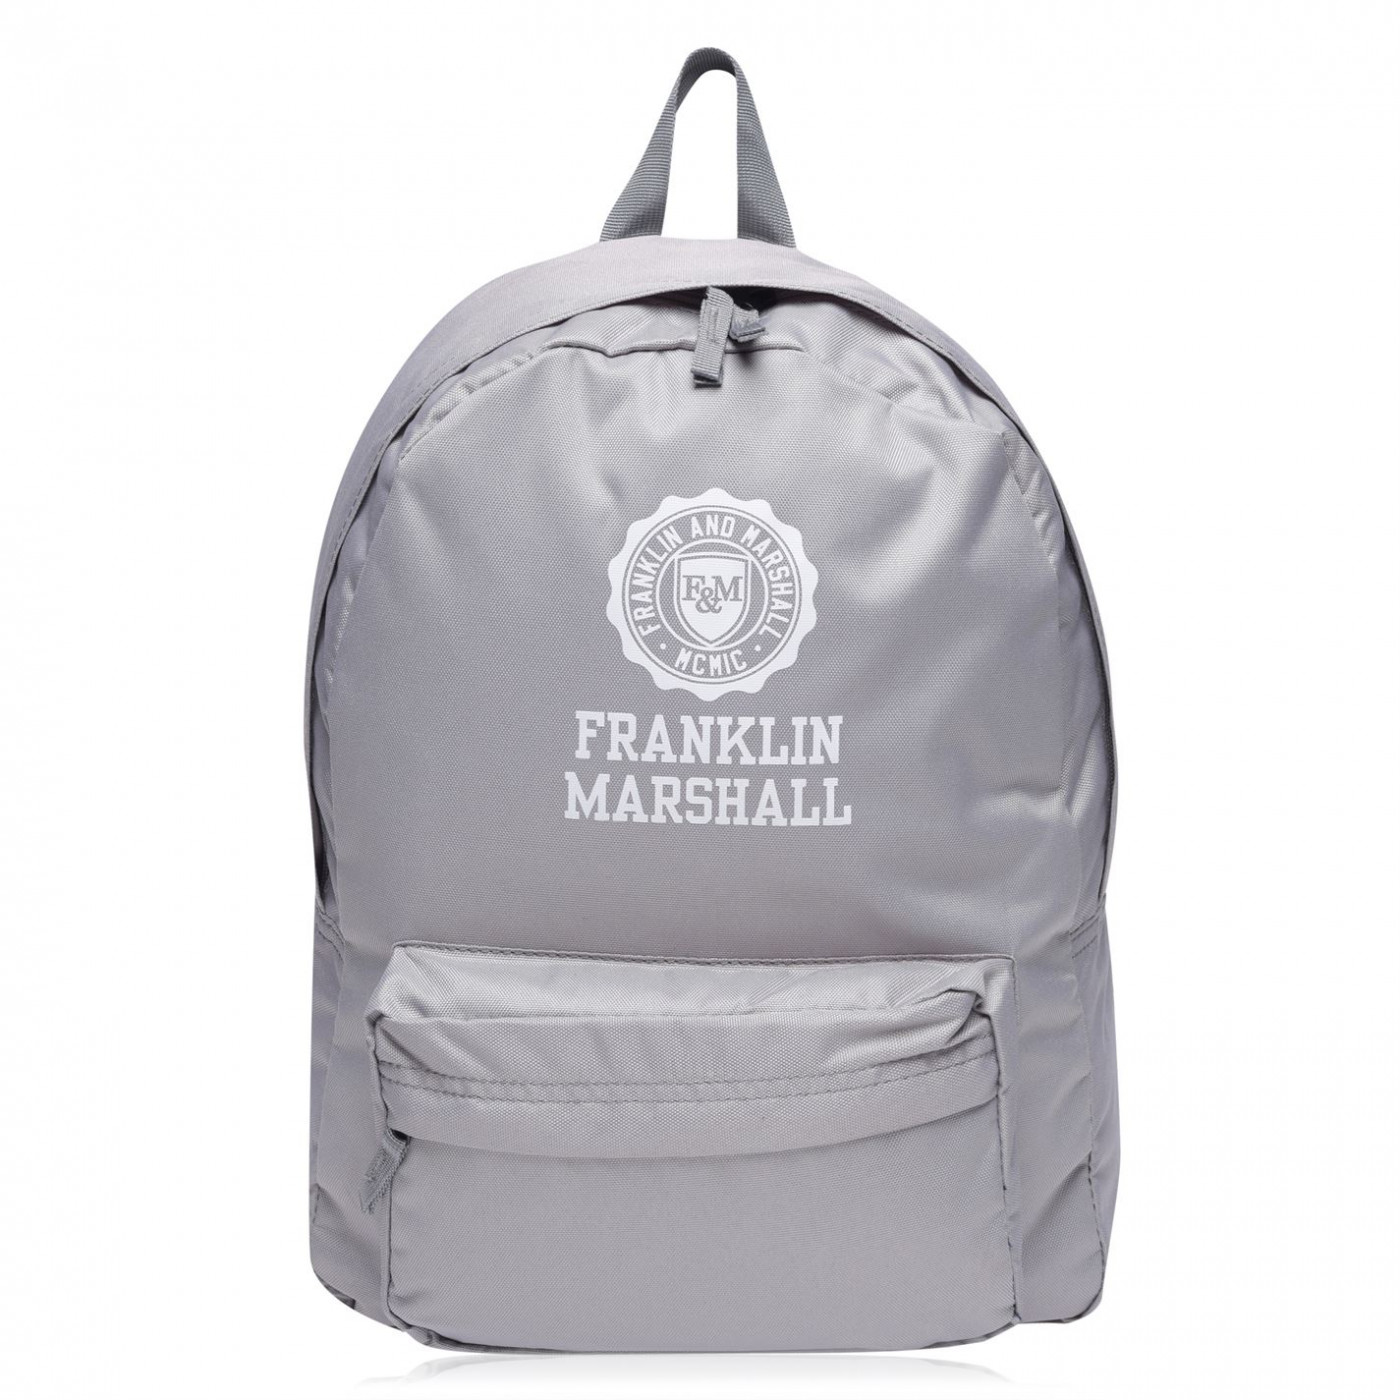 Franklin and Marshall BackPack 02 BX99